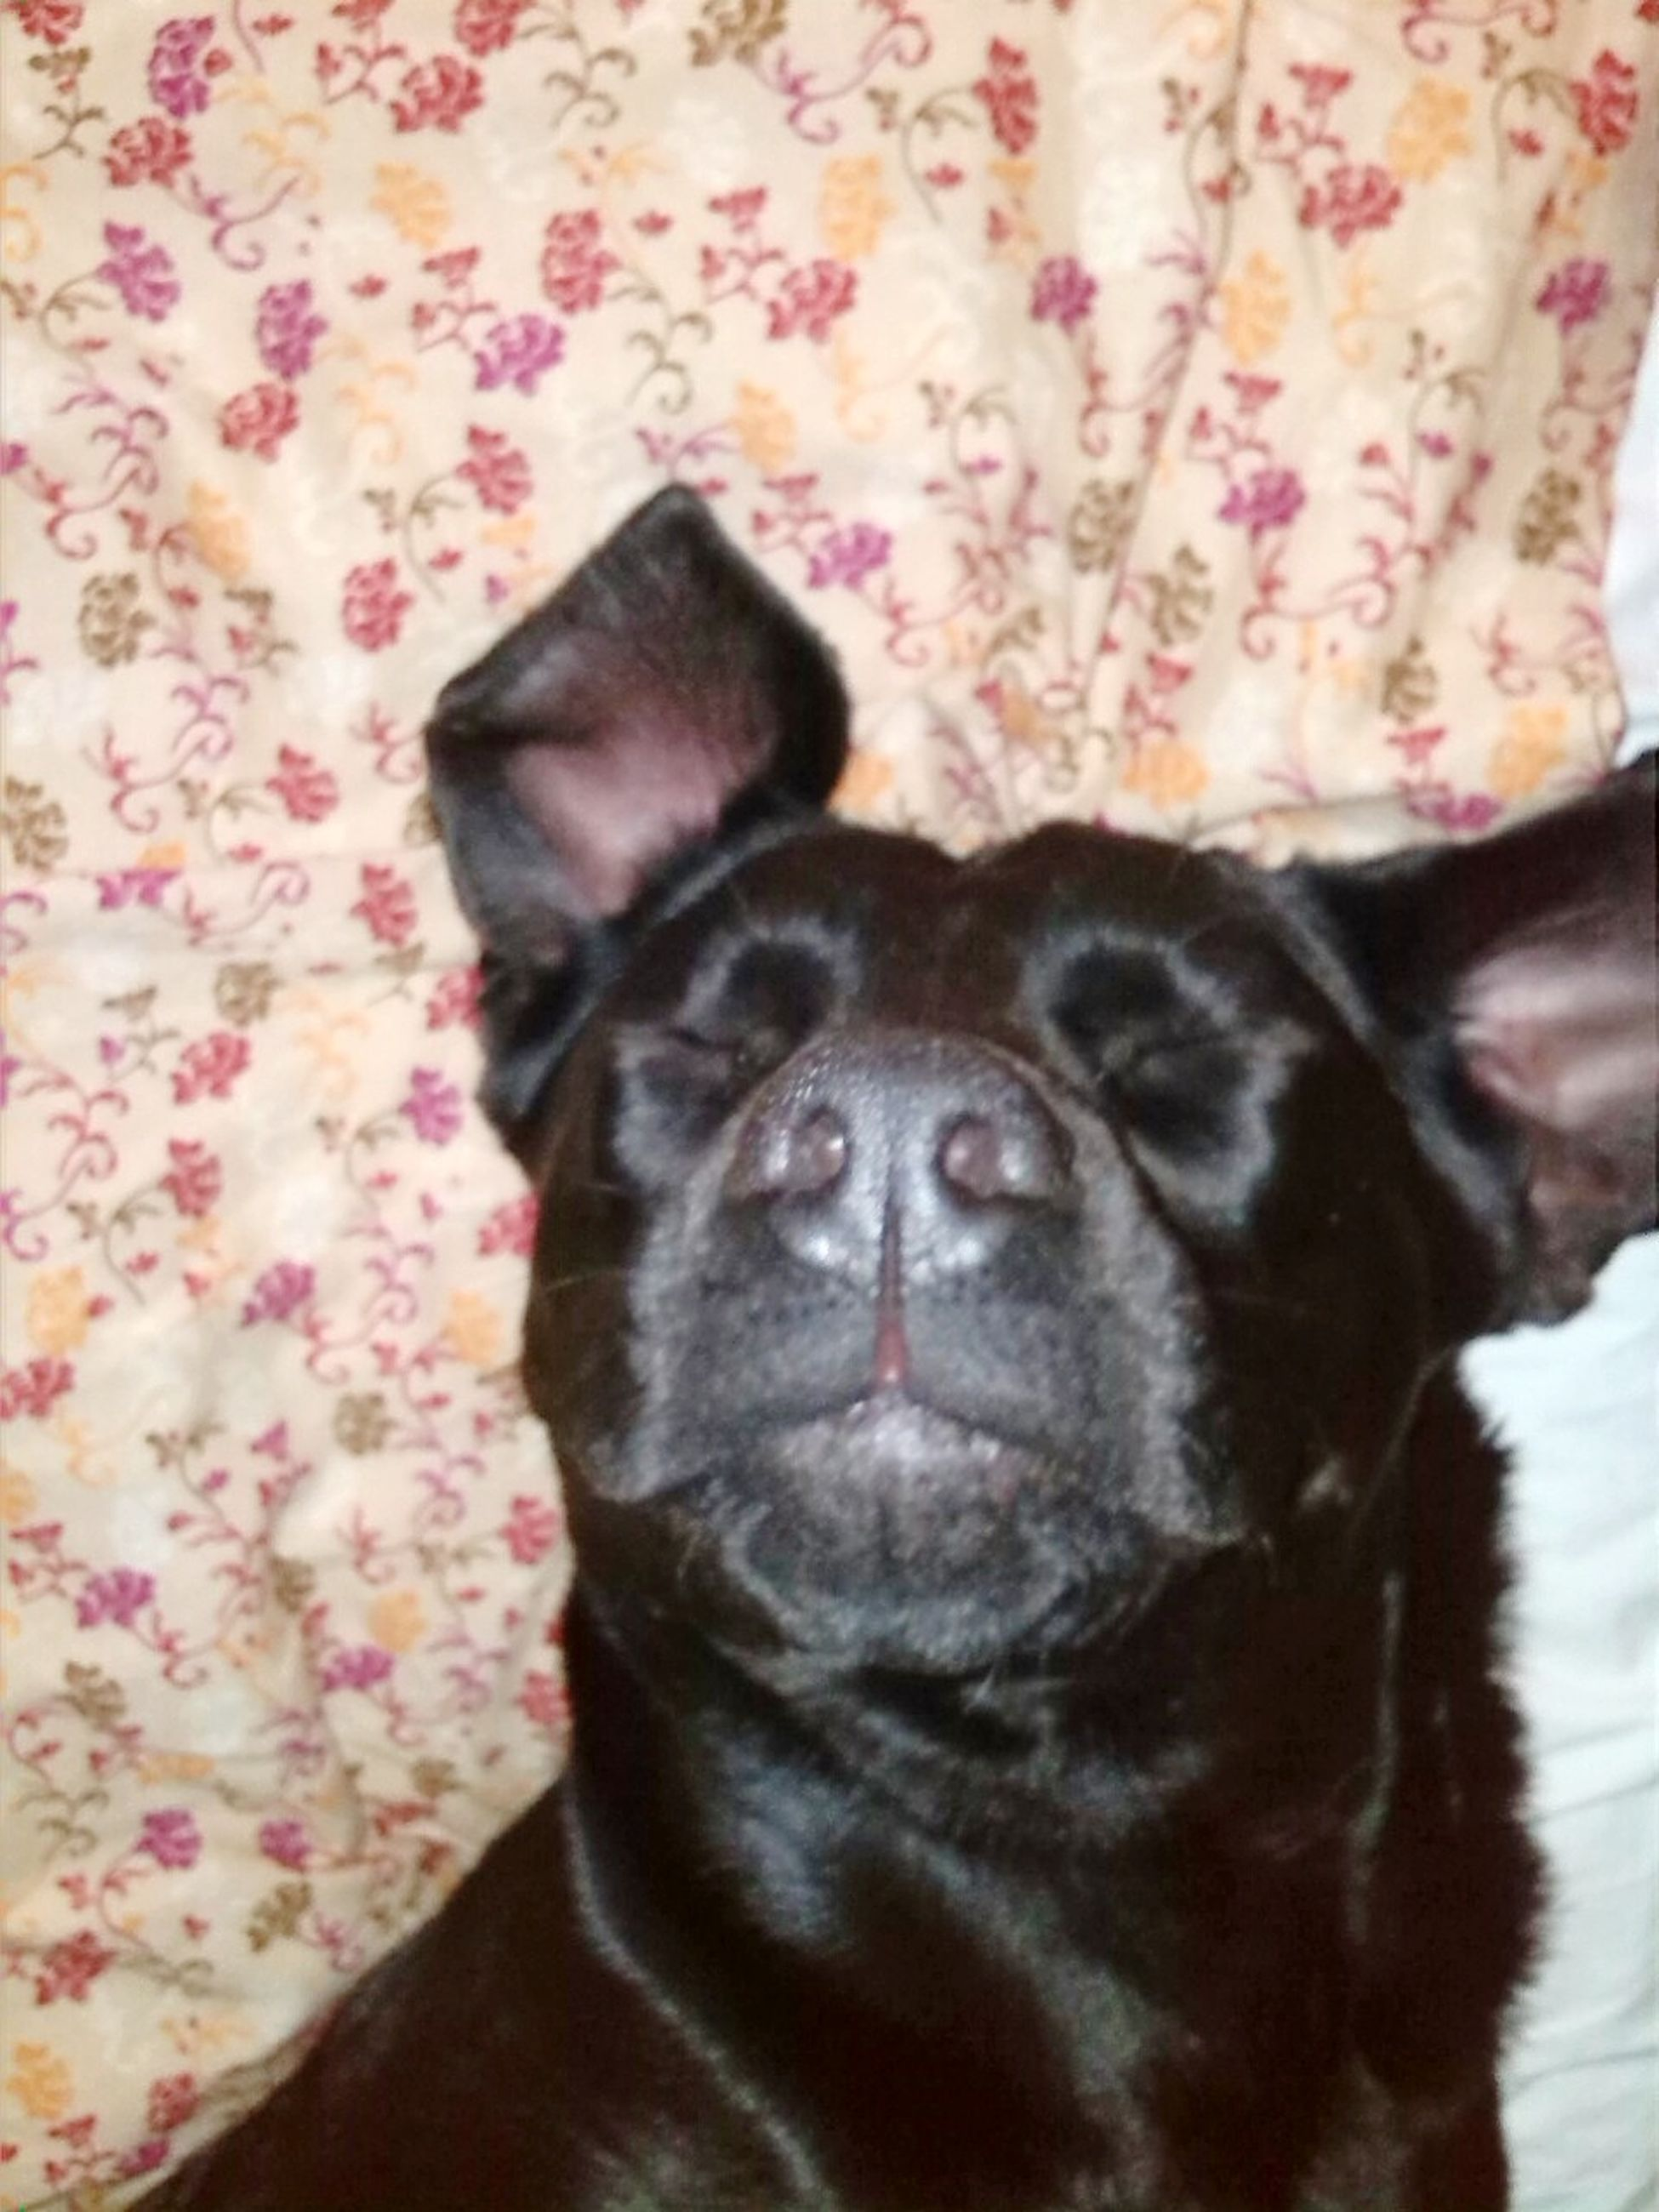 pets, looking at camera, one animal, animal themes, portrait, domestic animals, mammal, dog, indoors, no people, close-up, boston terrier, day